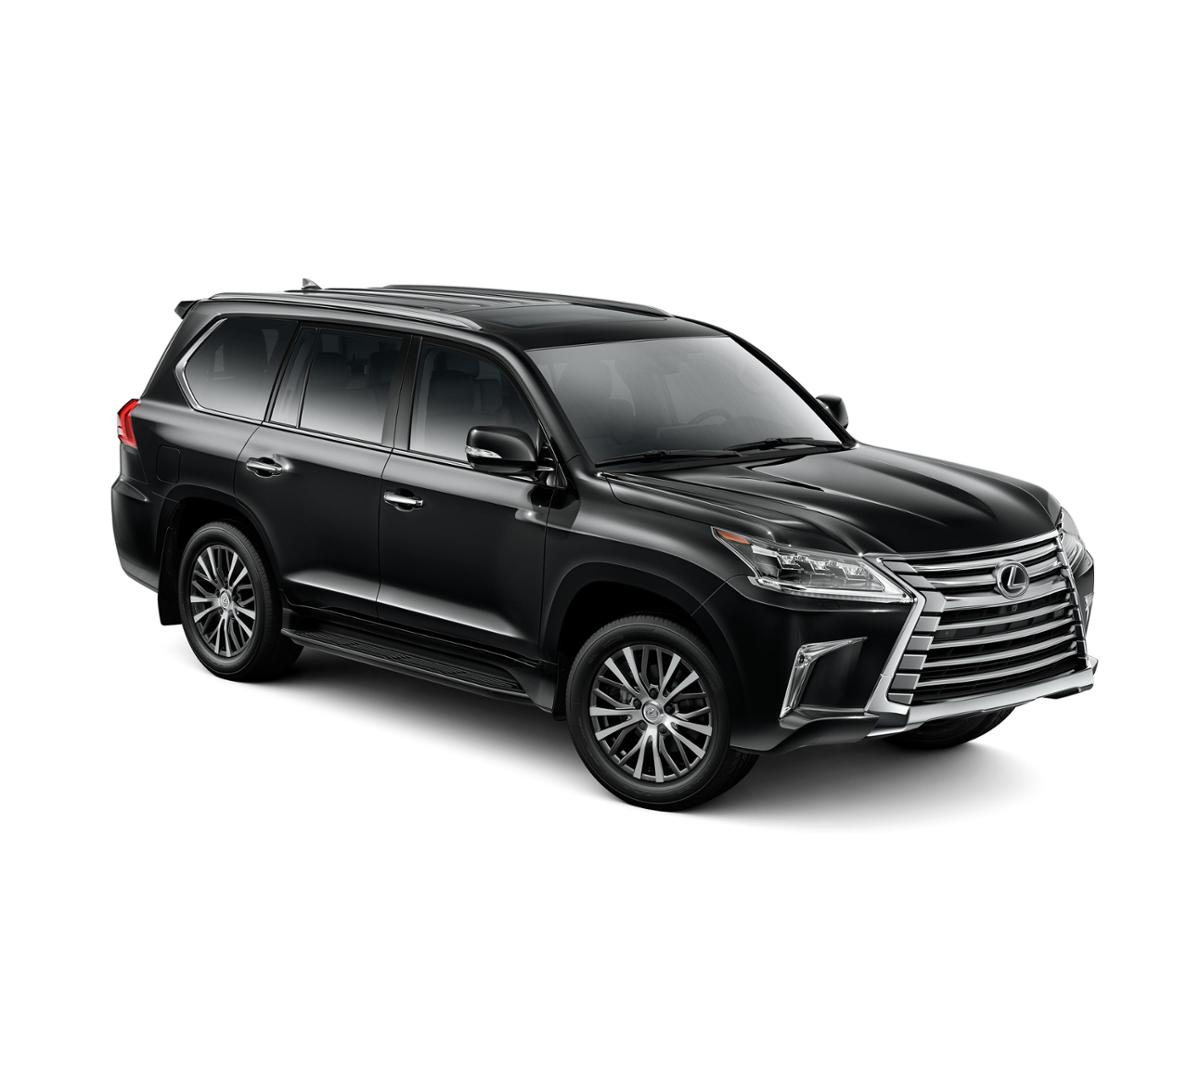 2019 Lexus LX 570 Vehicle Photo in Fort Worth, TX 76132